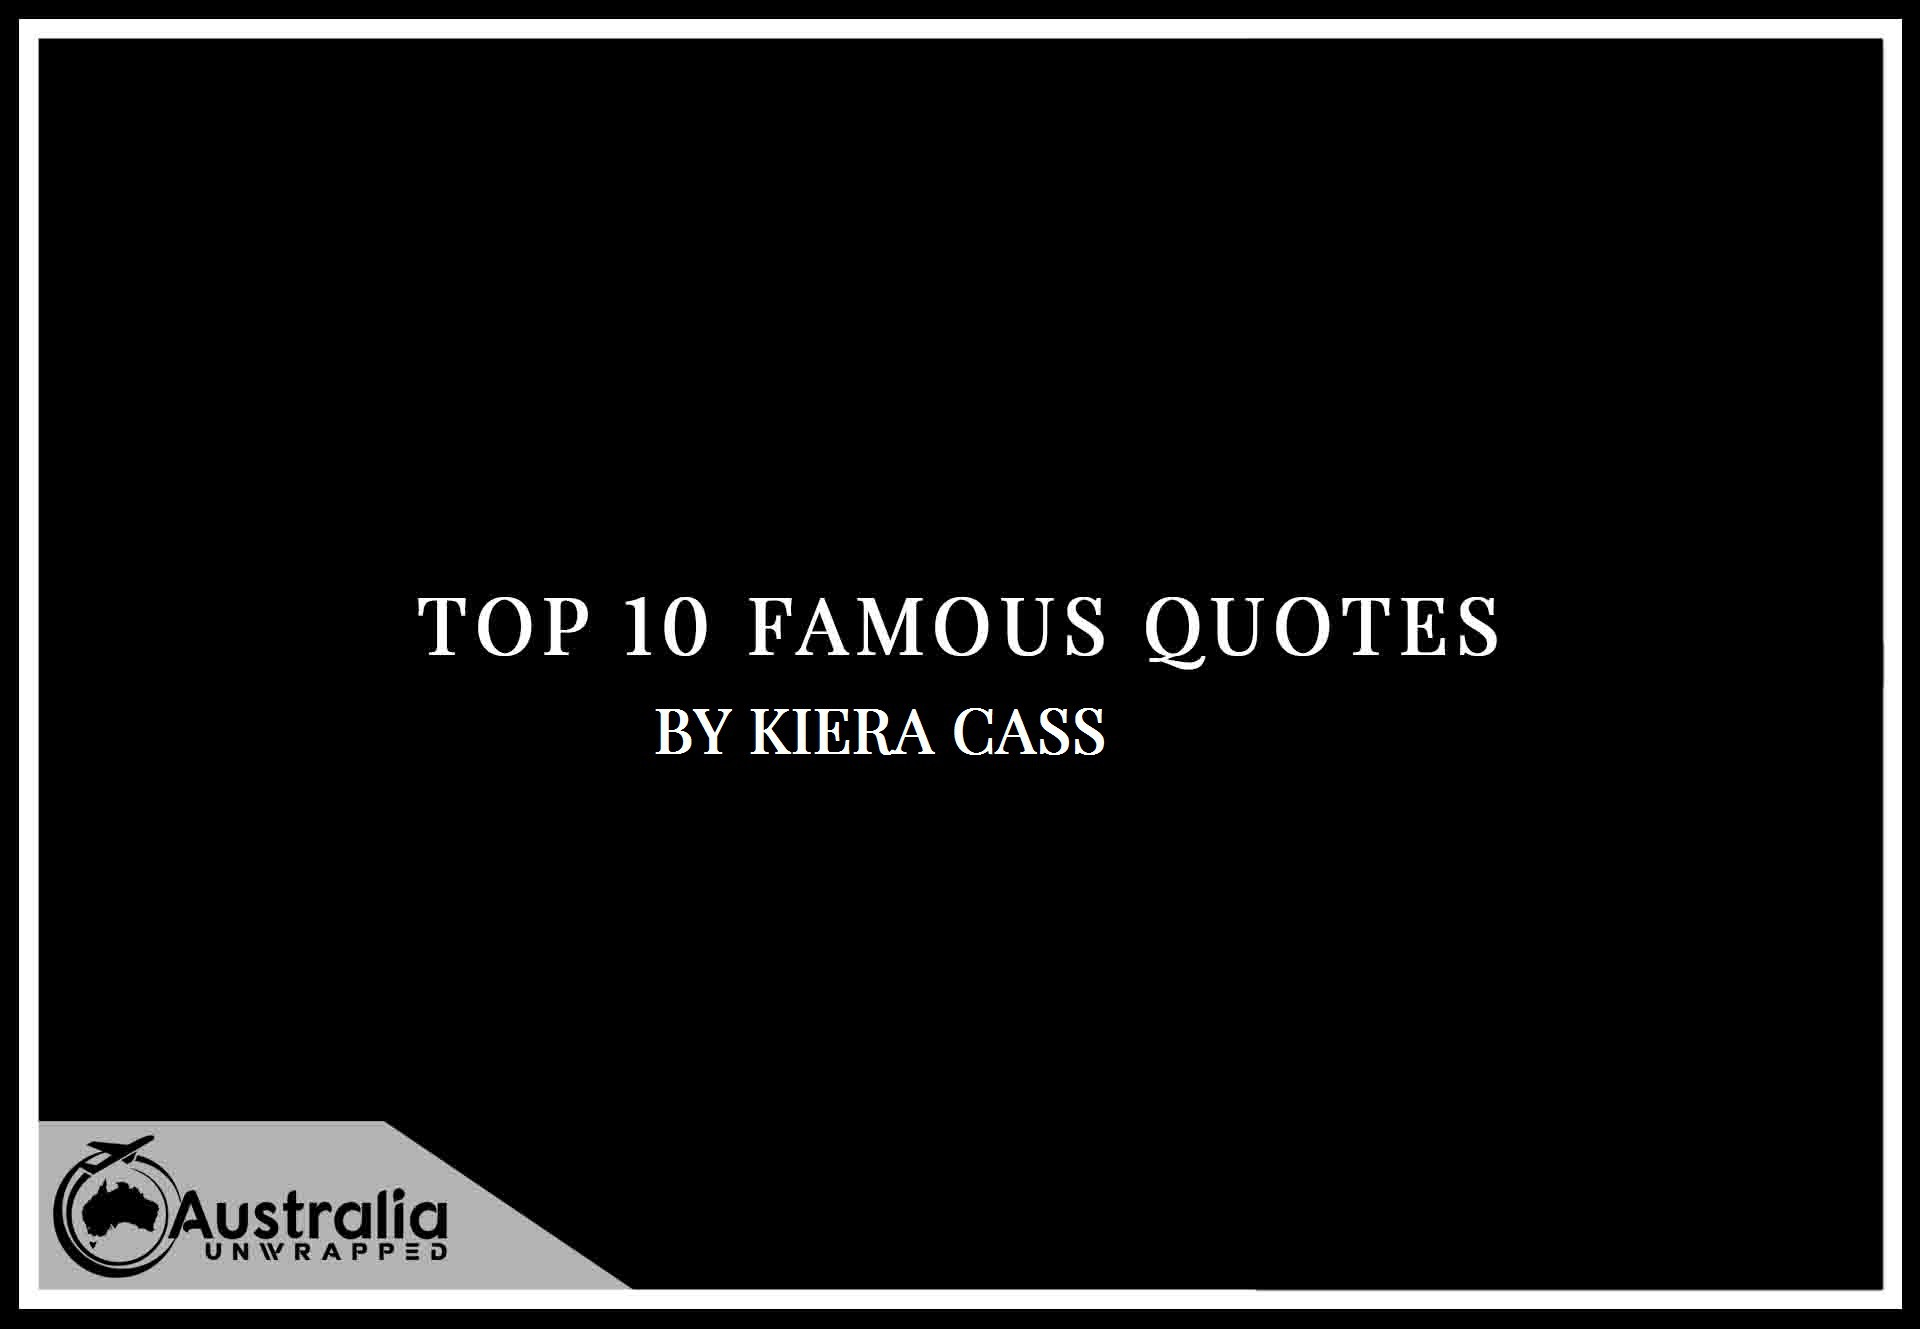 Kiera Cass's Top 10 Popular and Famous Quotes